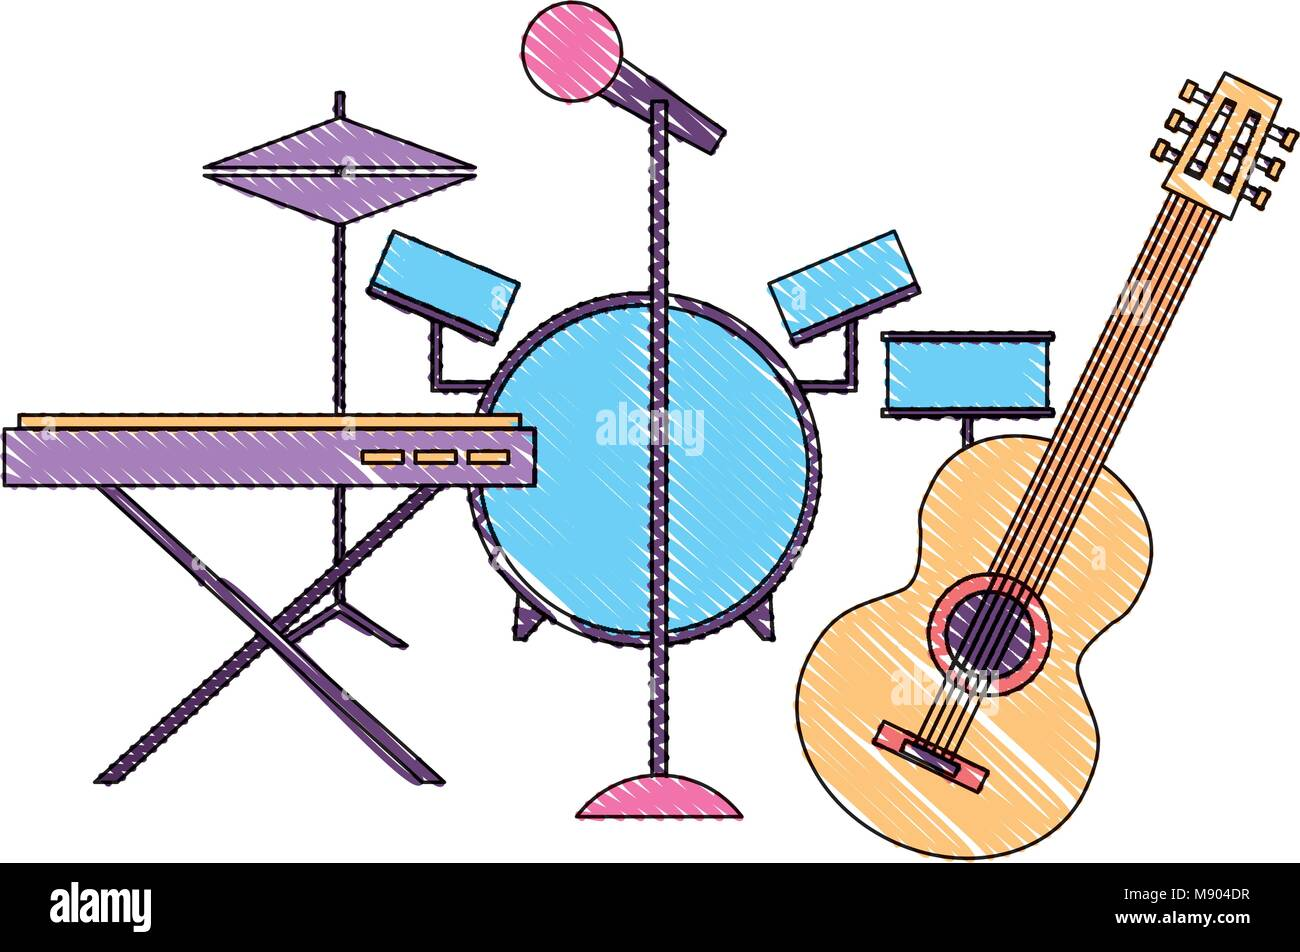 Musical Instruments Saxophone Synthesizer Guitar Battery Microphone Vector Illustration Drawing Color